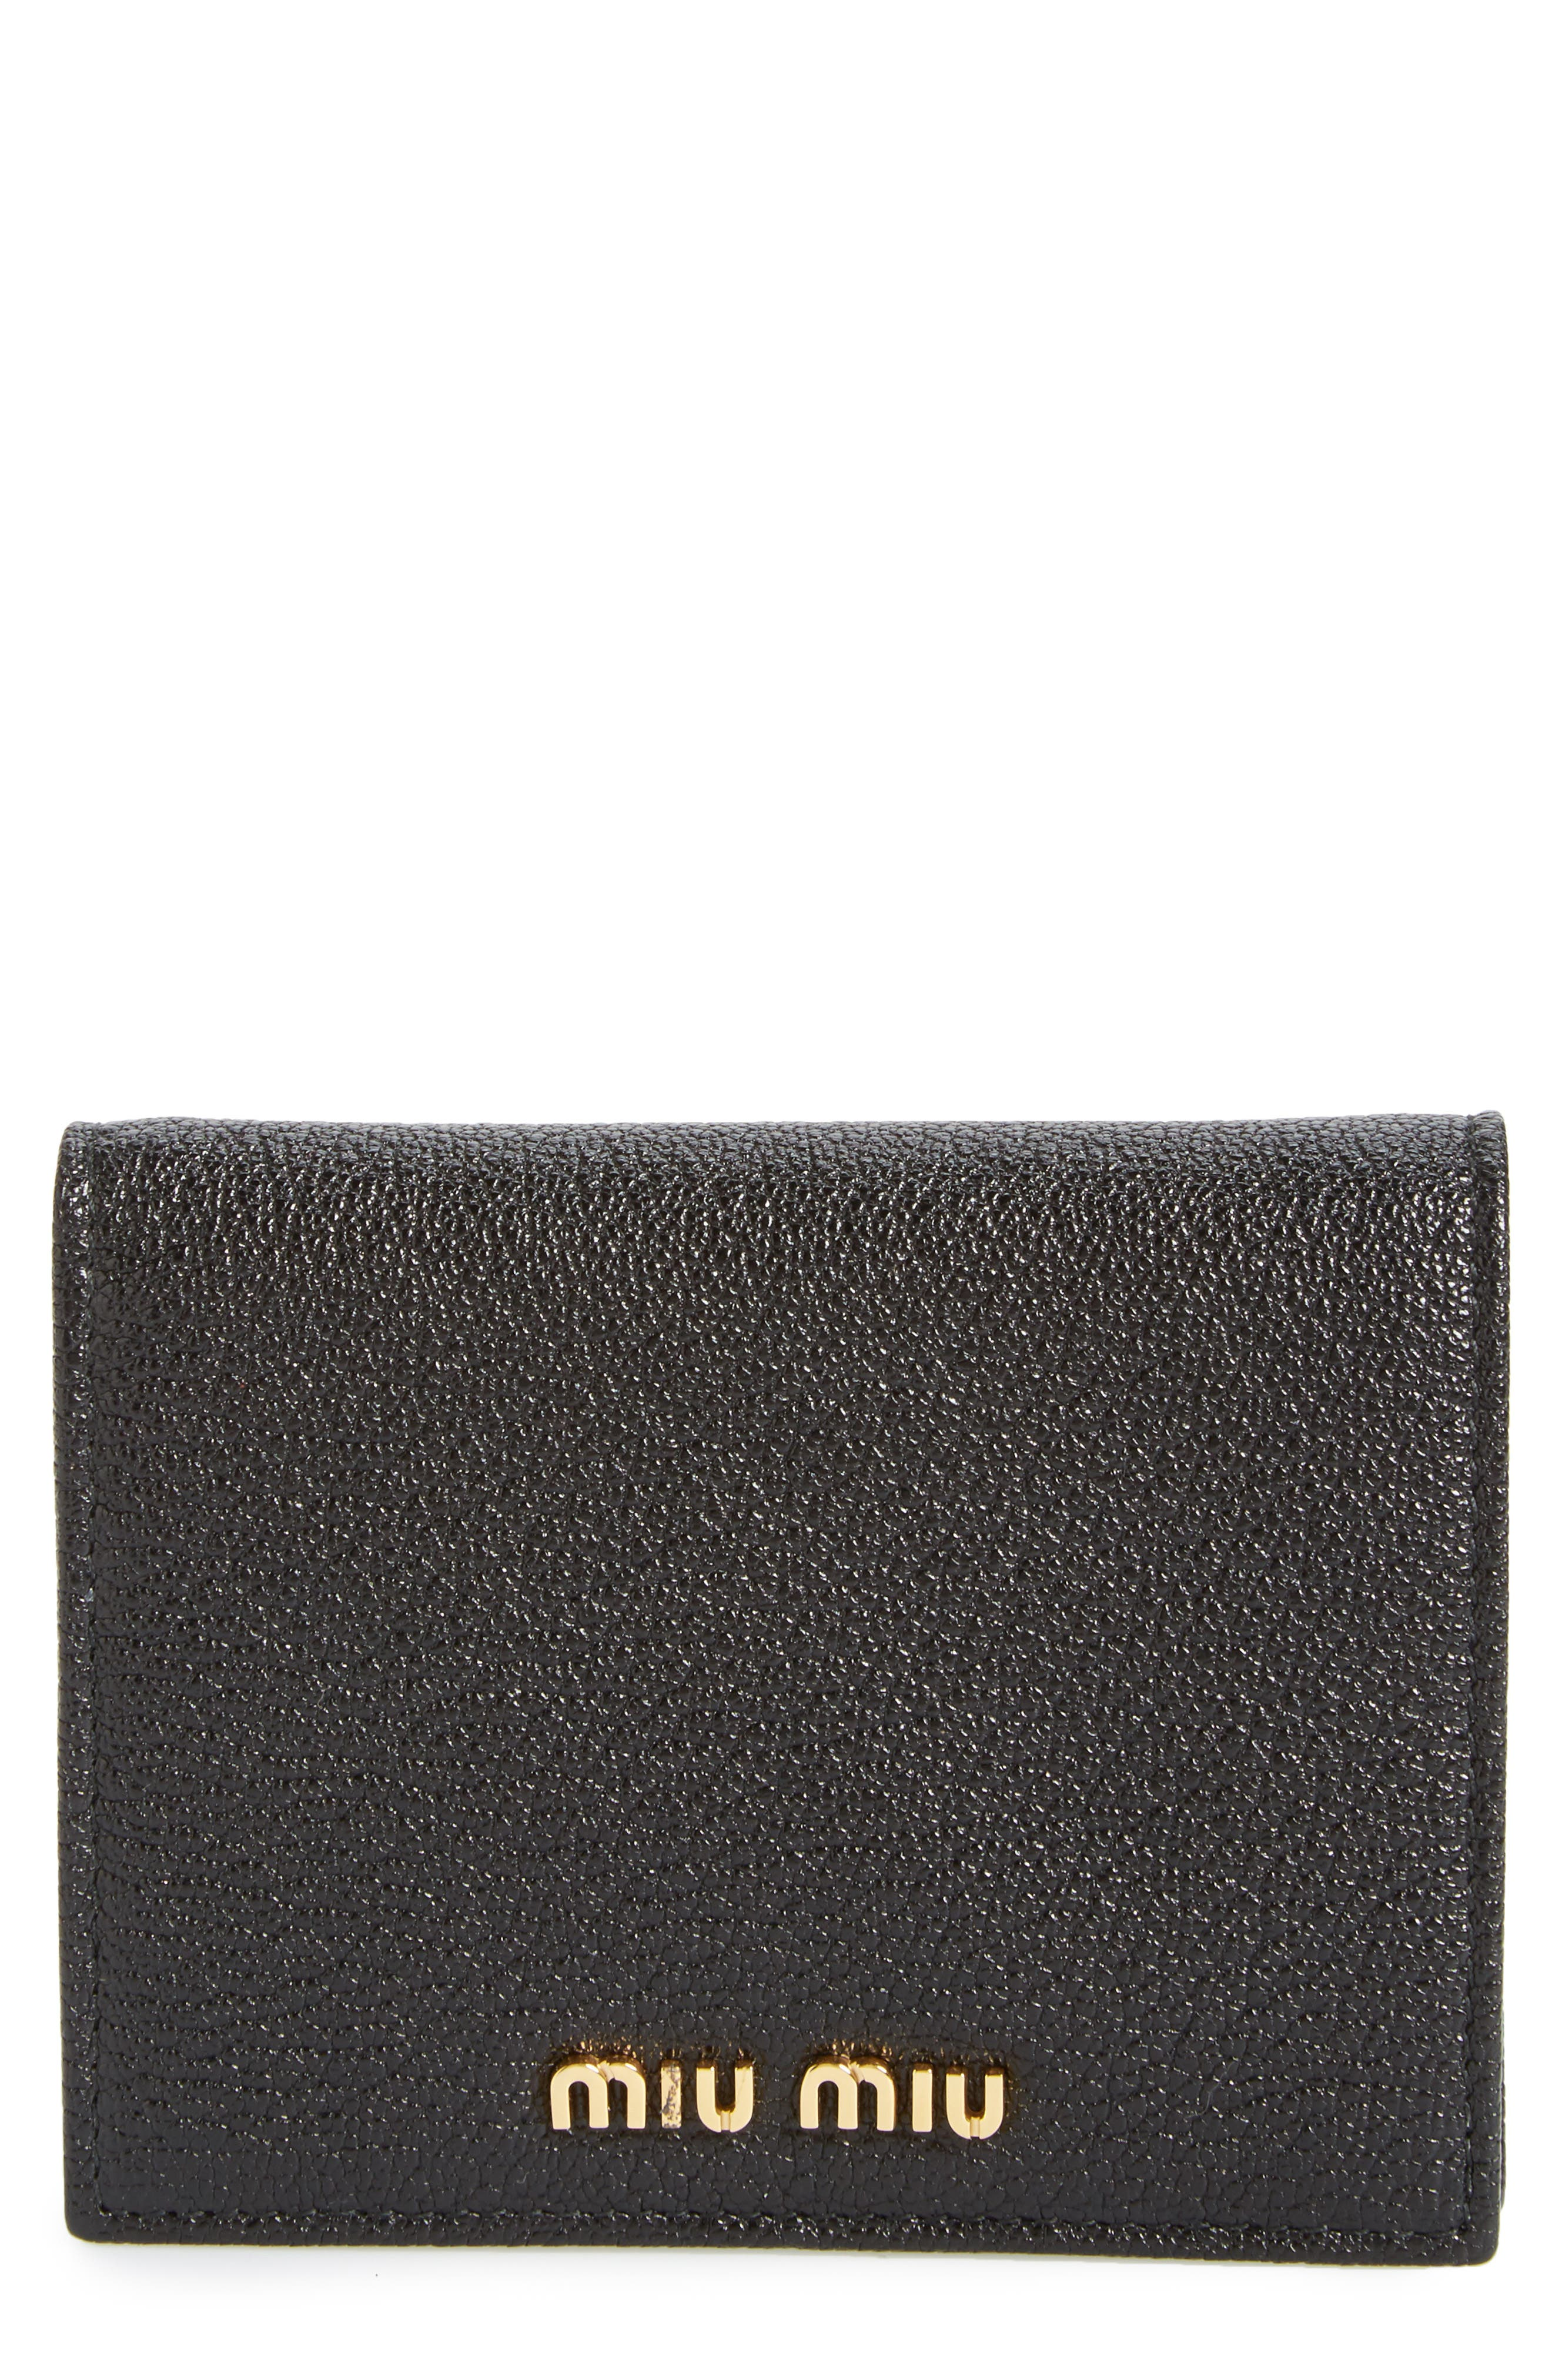 Miu Miu Madras Leather French Wallet